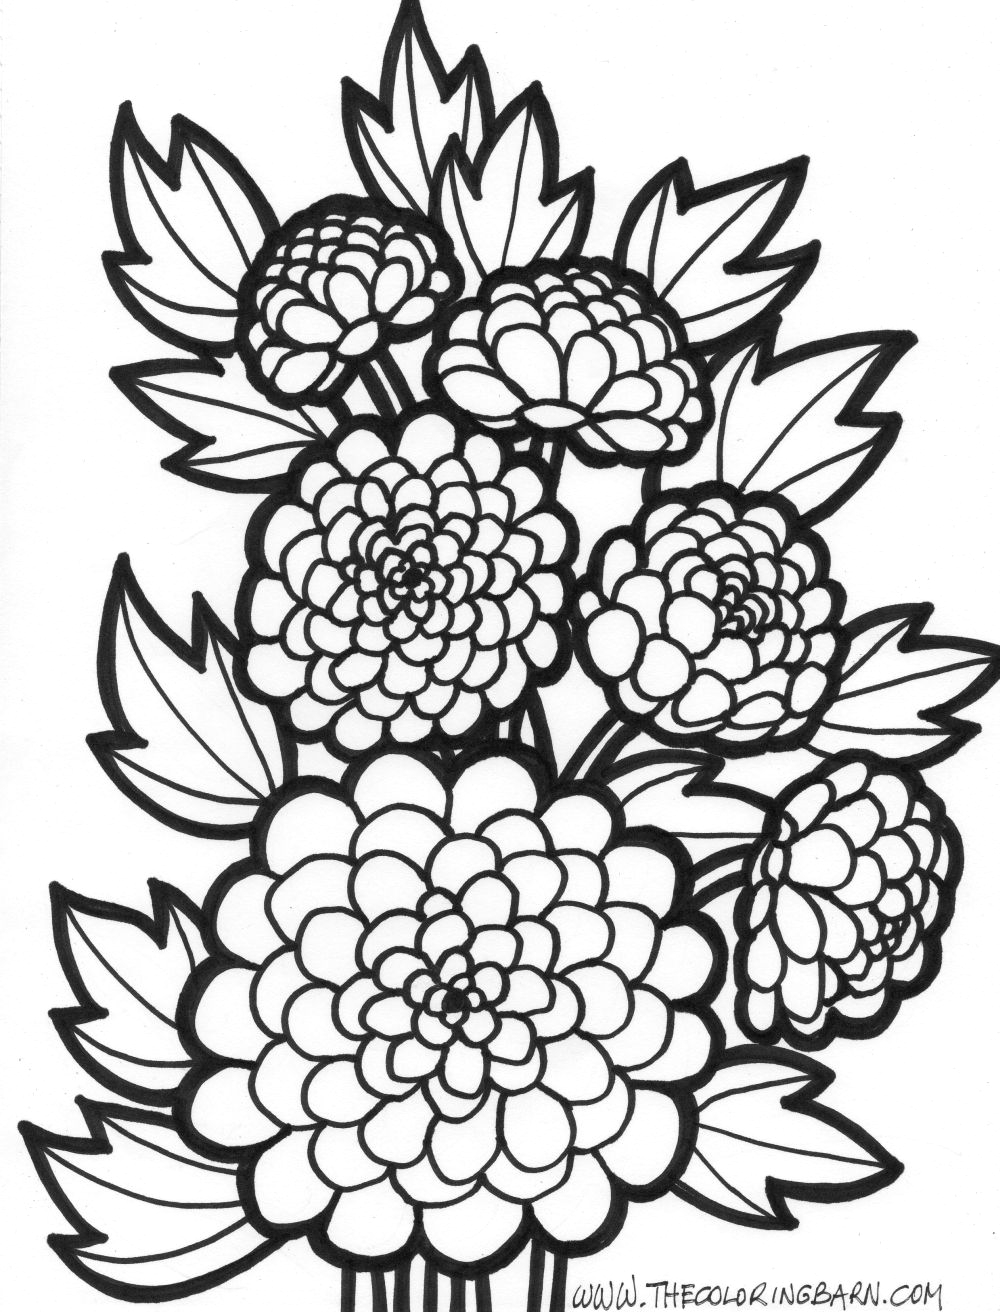 Coloring Pages Of Flowers for Teenagers Difficult Flower Coloring Pages for Teens Coloring Home